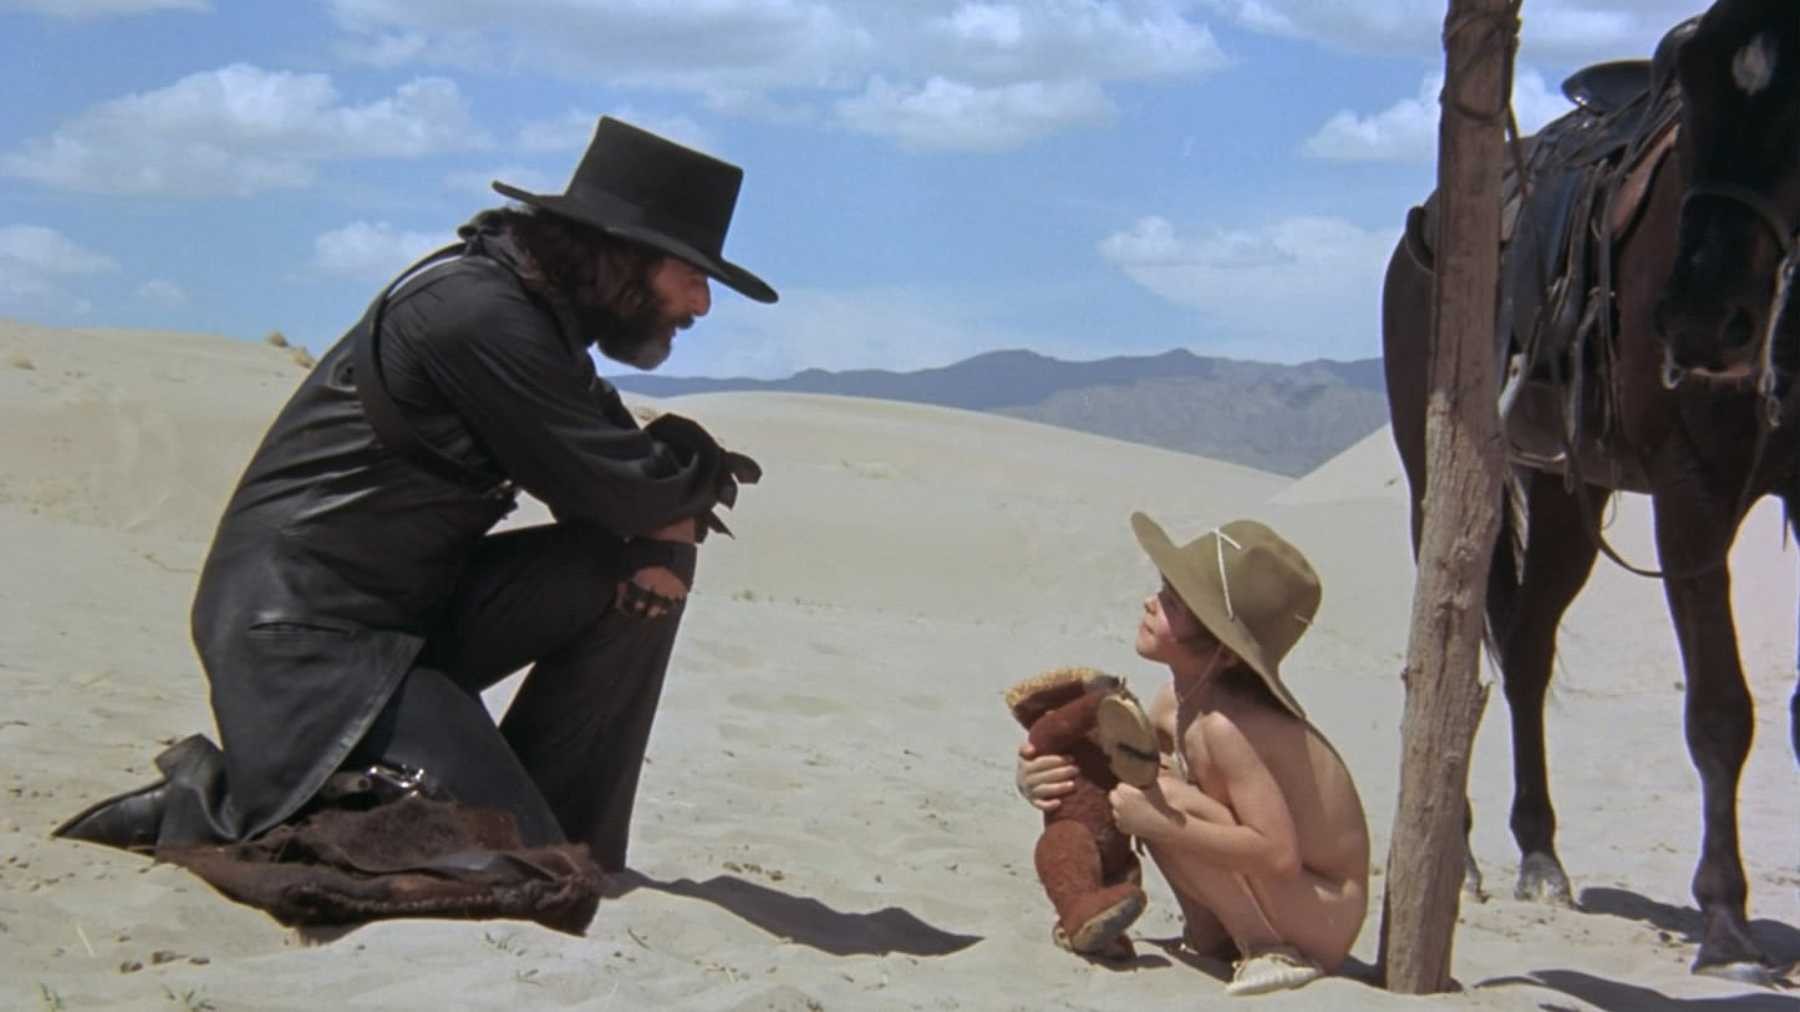 Weird Westerns Part 2: Painting the Town Dead